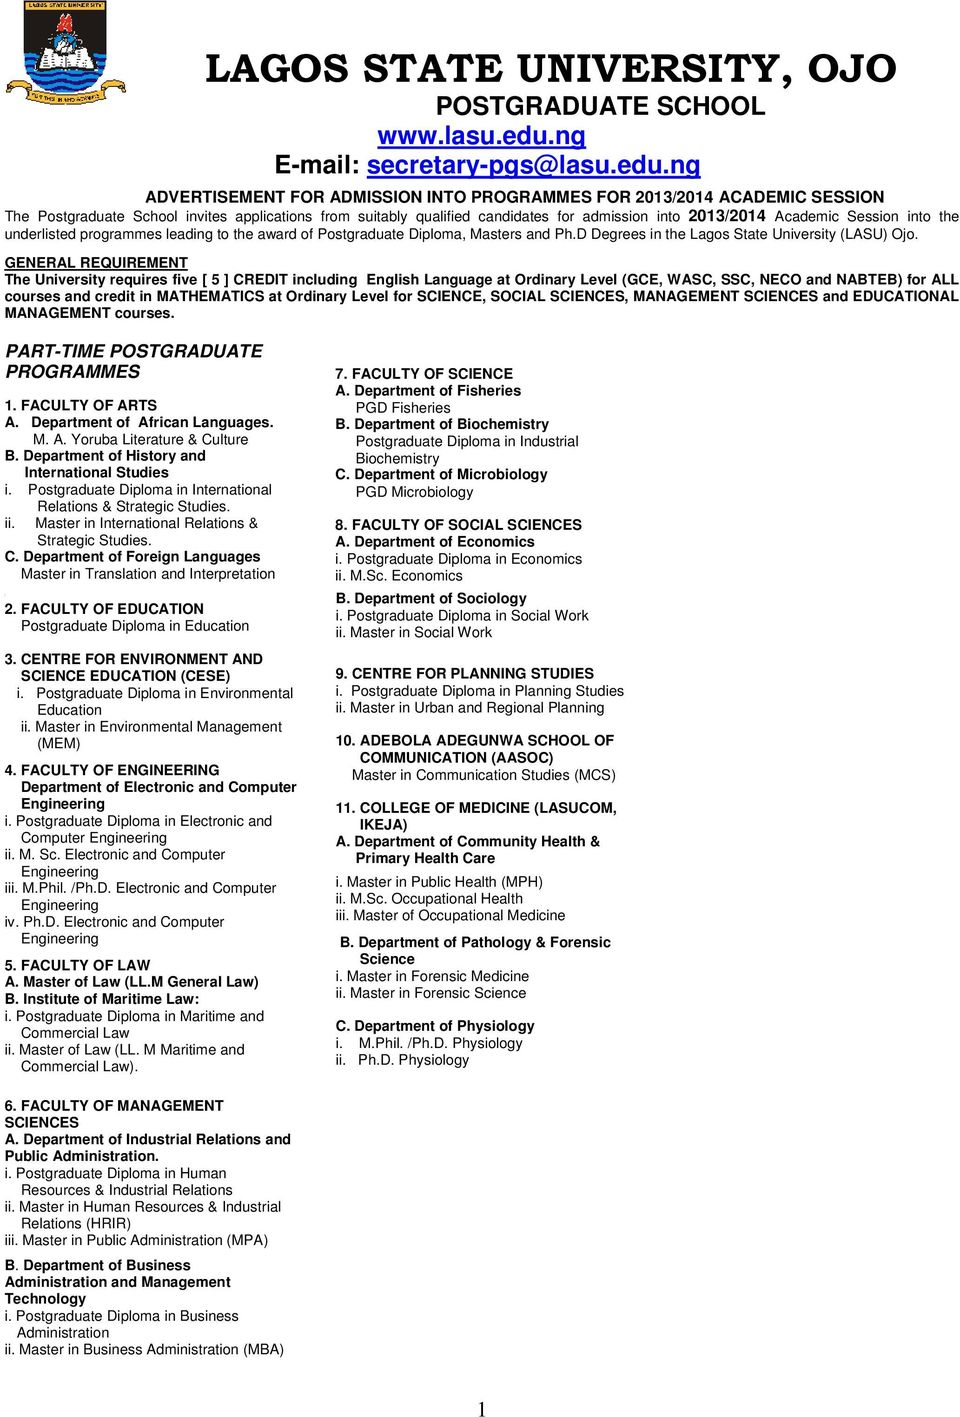 ng ADVERTISEMENT FOR ADMISSION INTO PROGRAMMES FOR 2013/2014 ACADEMIC SESSION The Postgraduate School invites applications from suitably qualified candidates for admission into 2013/2014 Academic